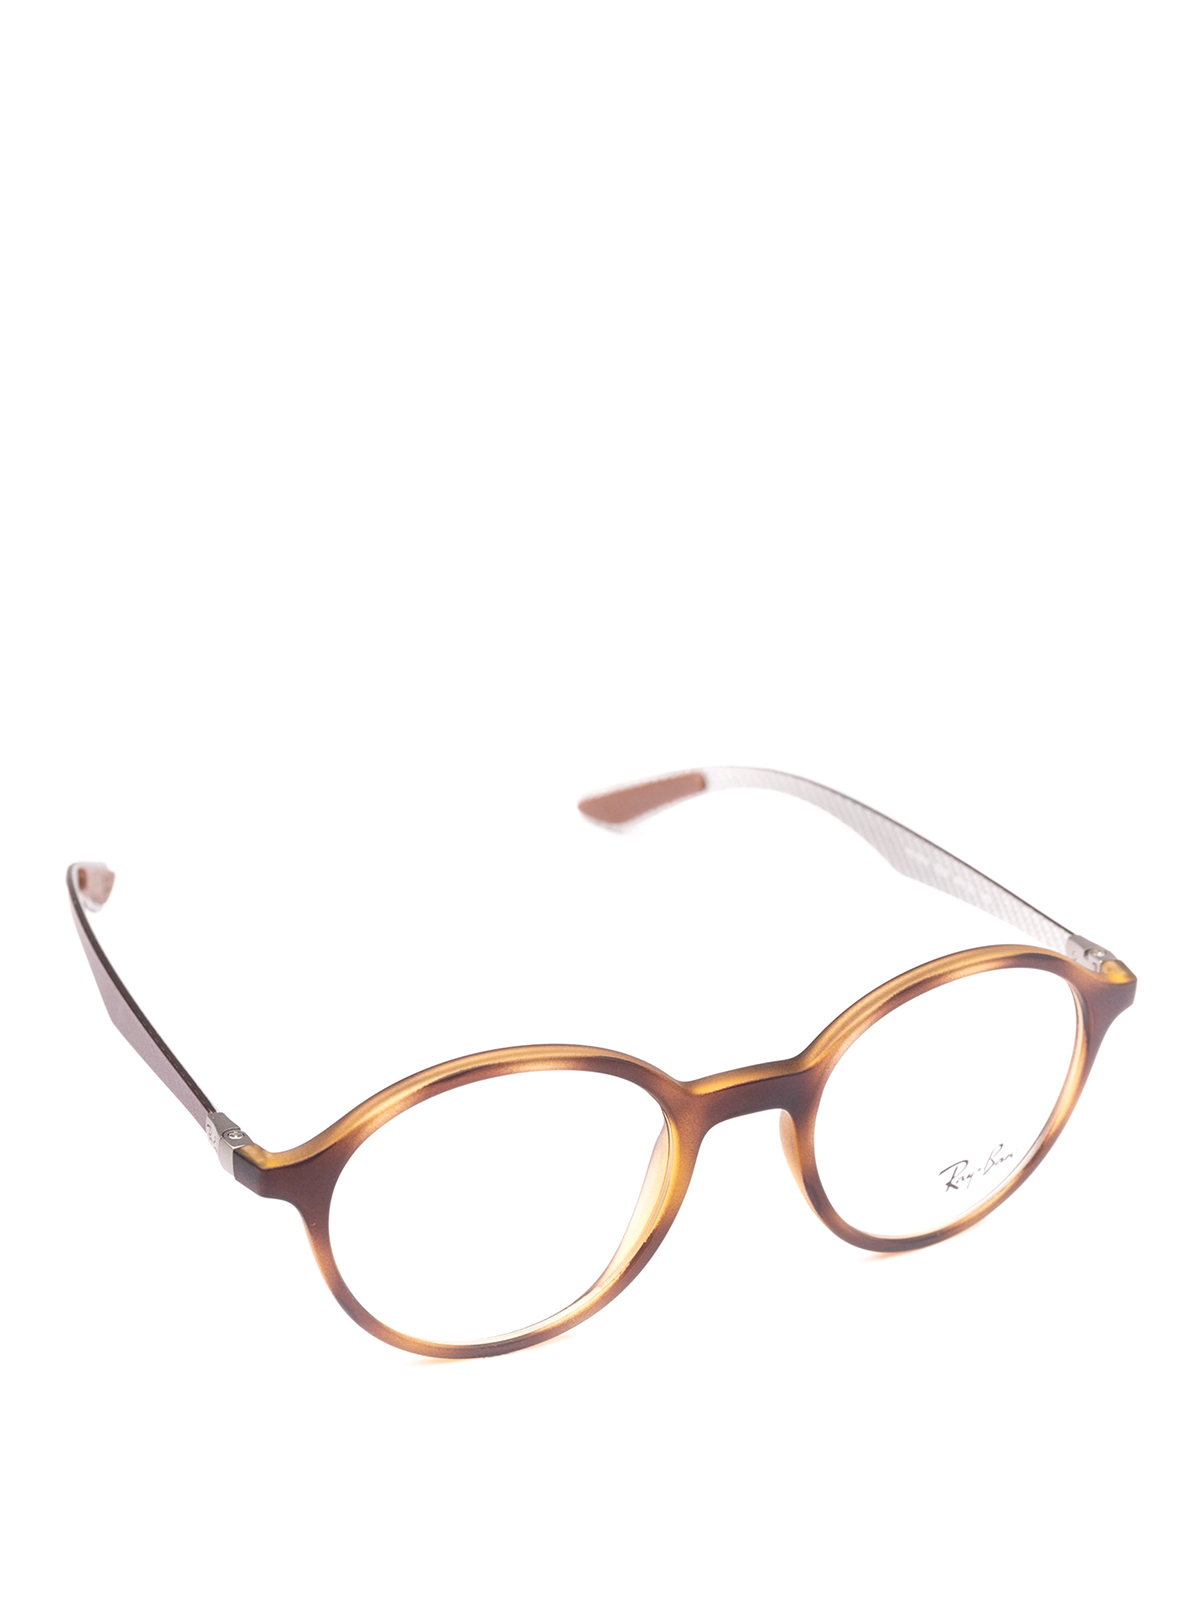 ceaf9aa980 Ray Ban - Matte Havana rounded frame glasses - glasses - RB8904 5200